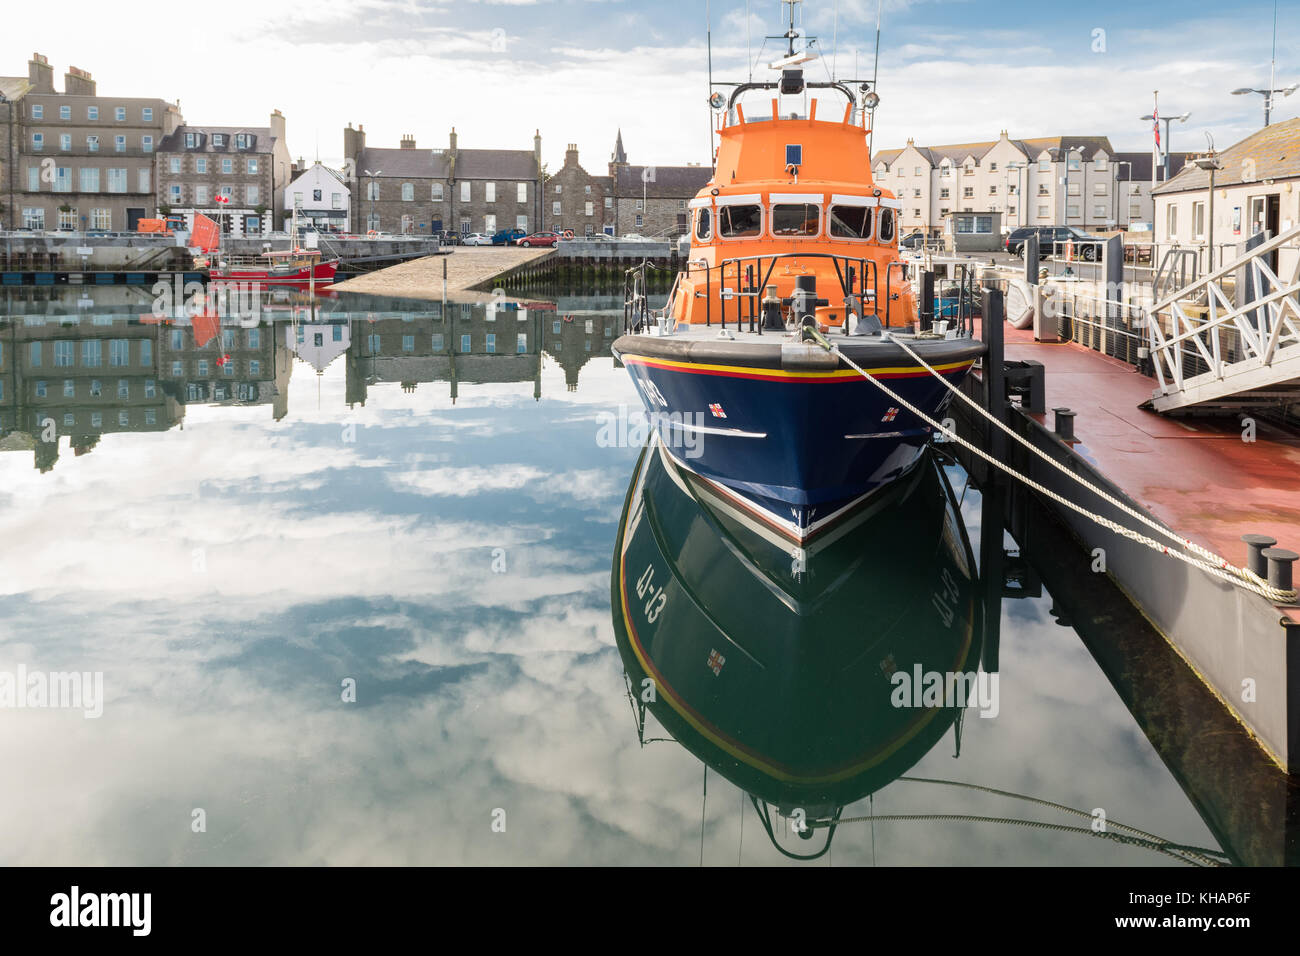 Kirkwall RNLI Lifeboat Margaret Foster in Kirkwall harbour, Orkney, Scotland, UK - Stock Image